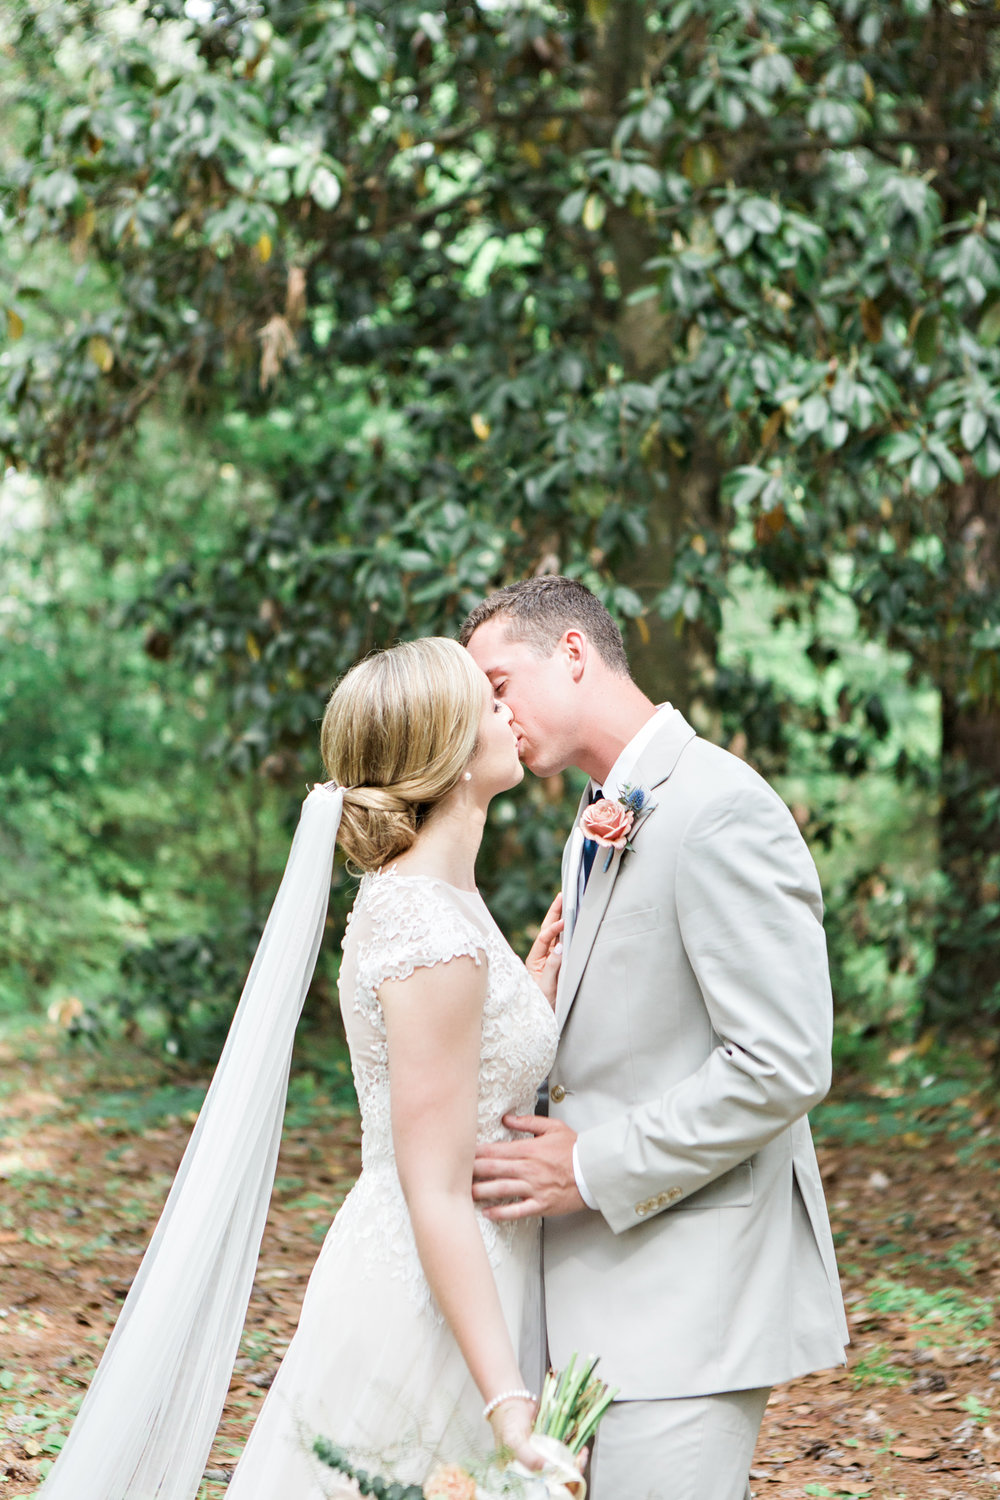 Matty-Drollette-Photography-Alabama-Weddings-Sara and Logan-121.jpg